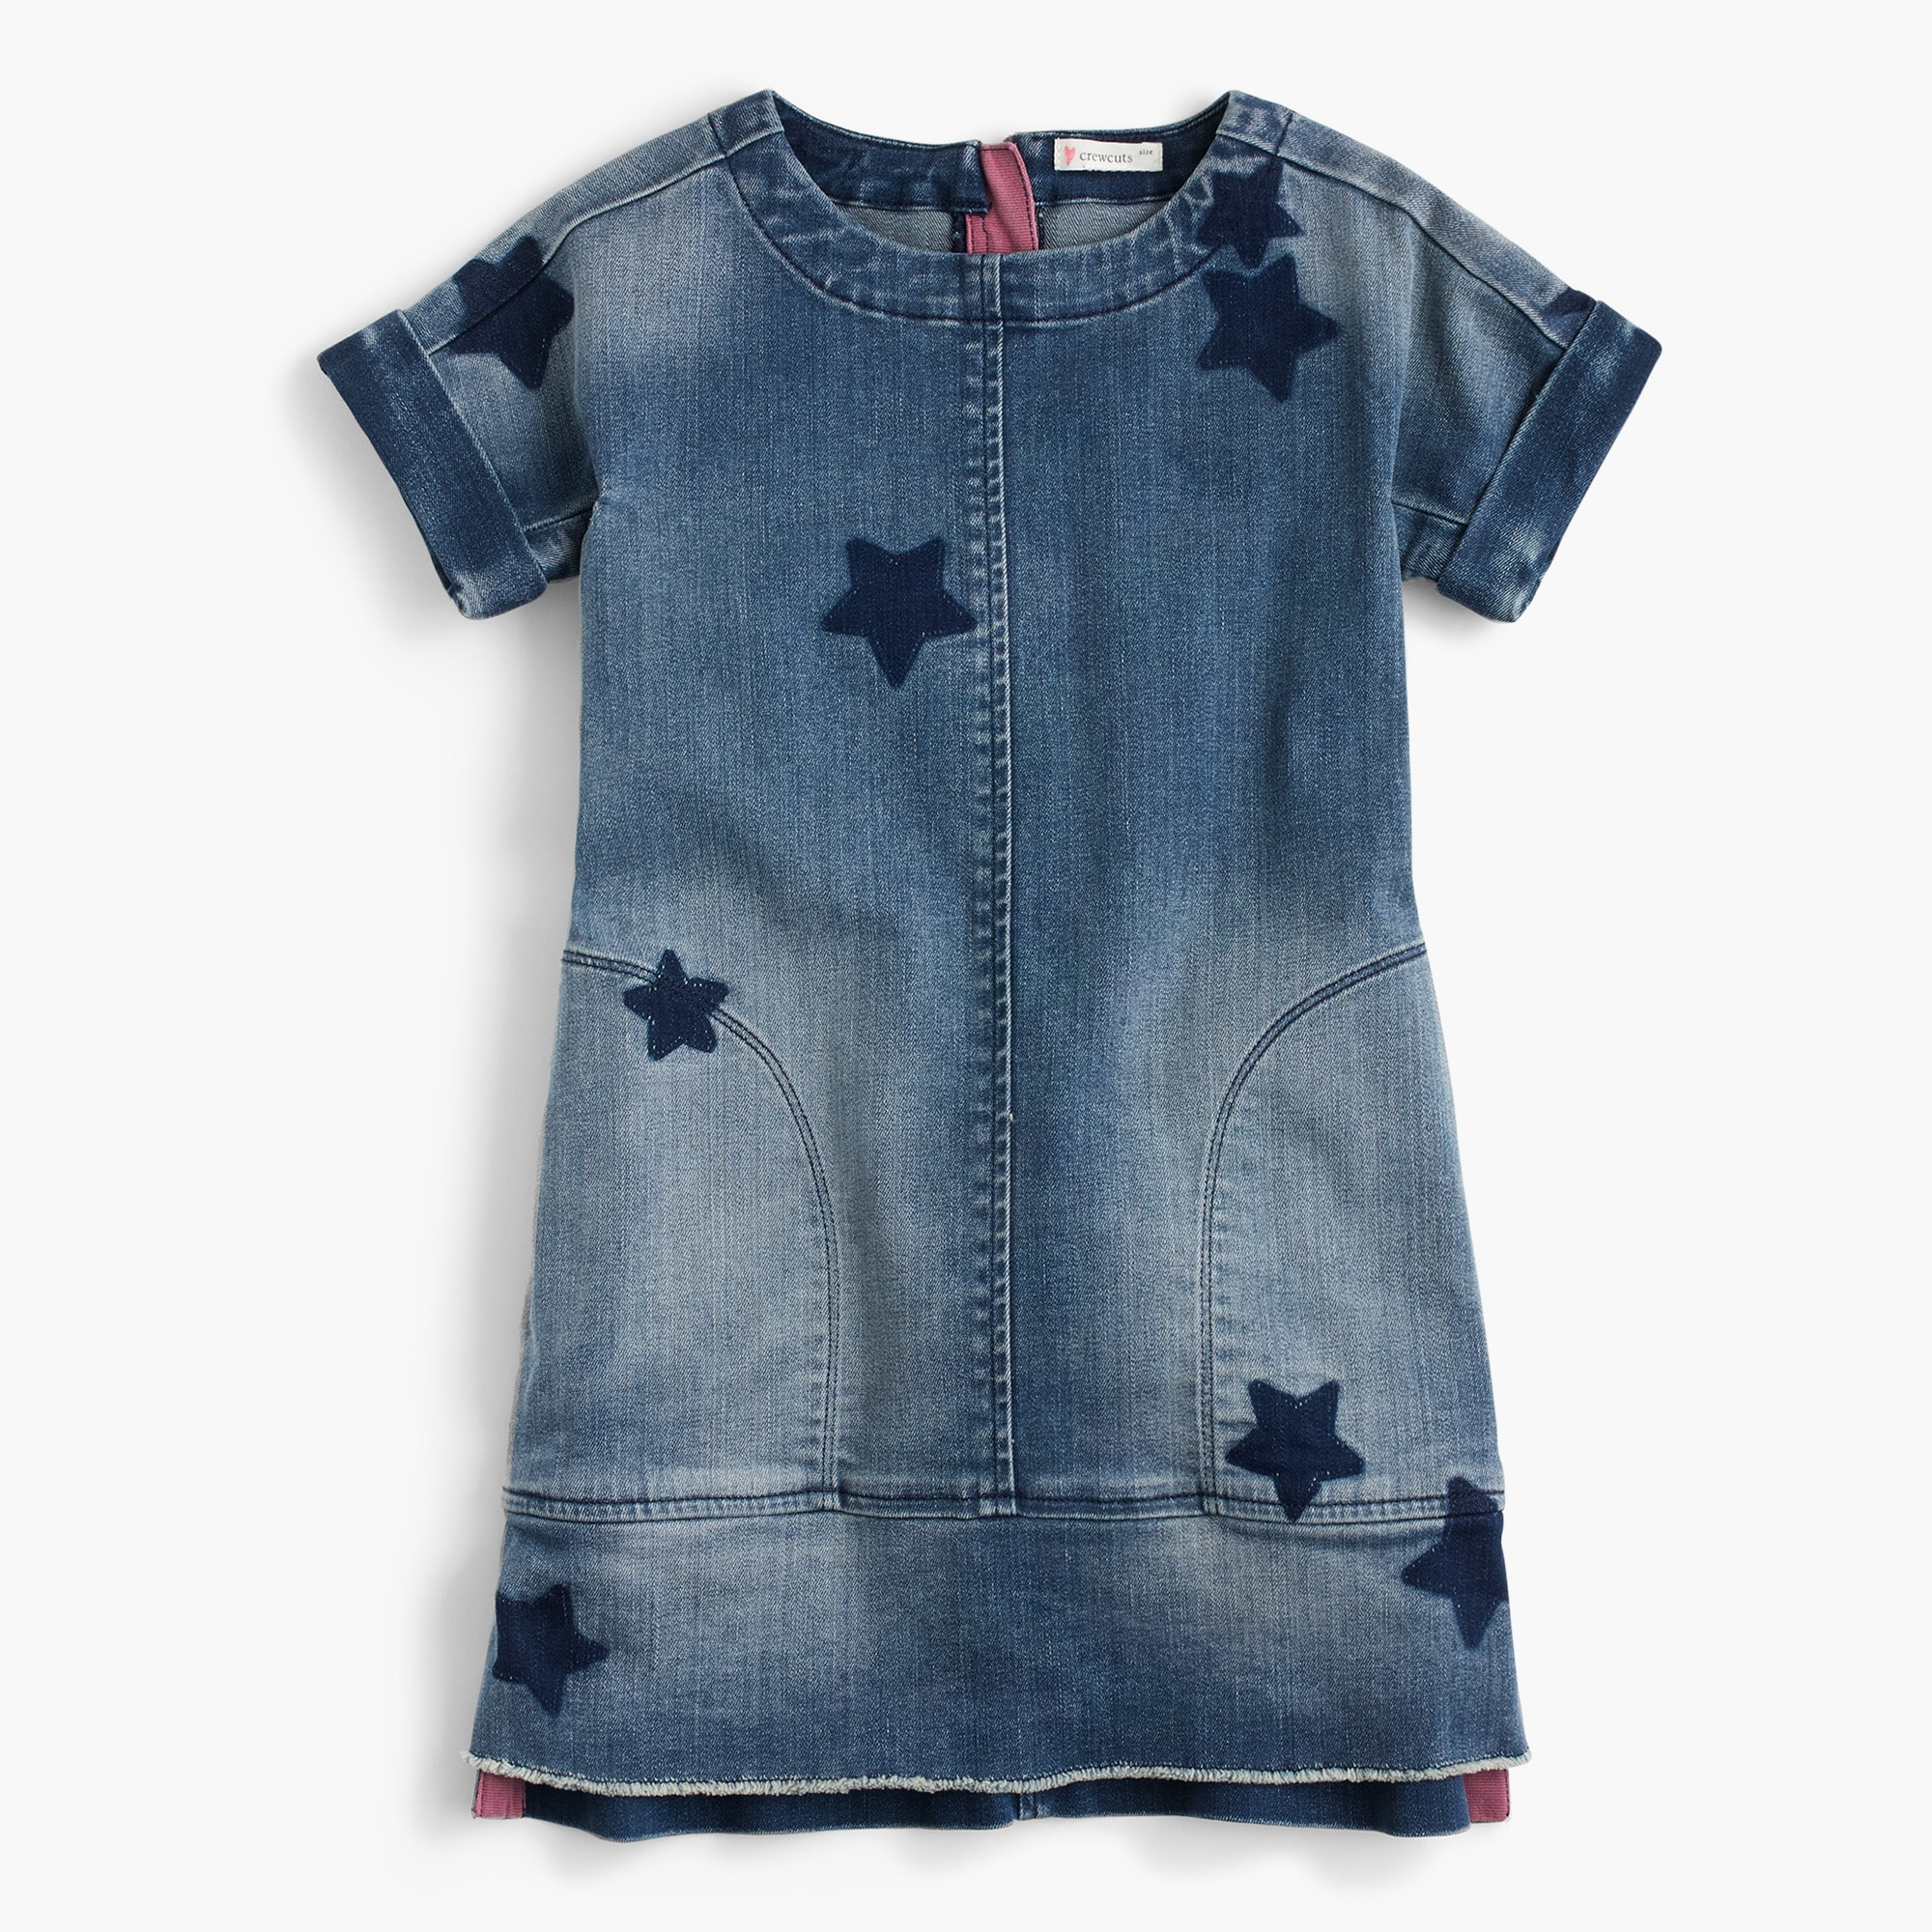 Girls' denim dress in star print girl new arrivals c